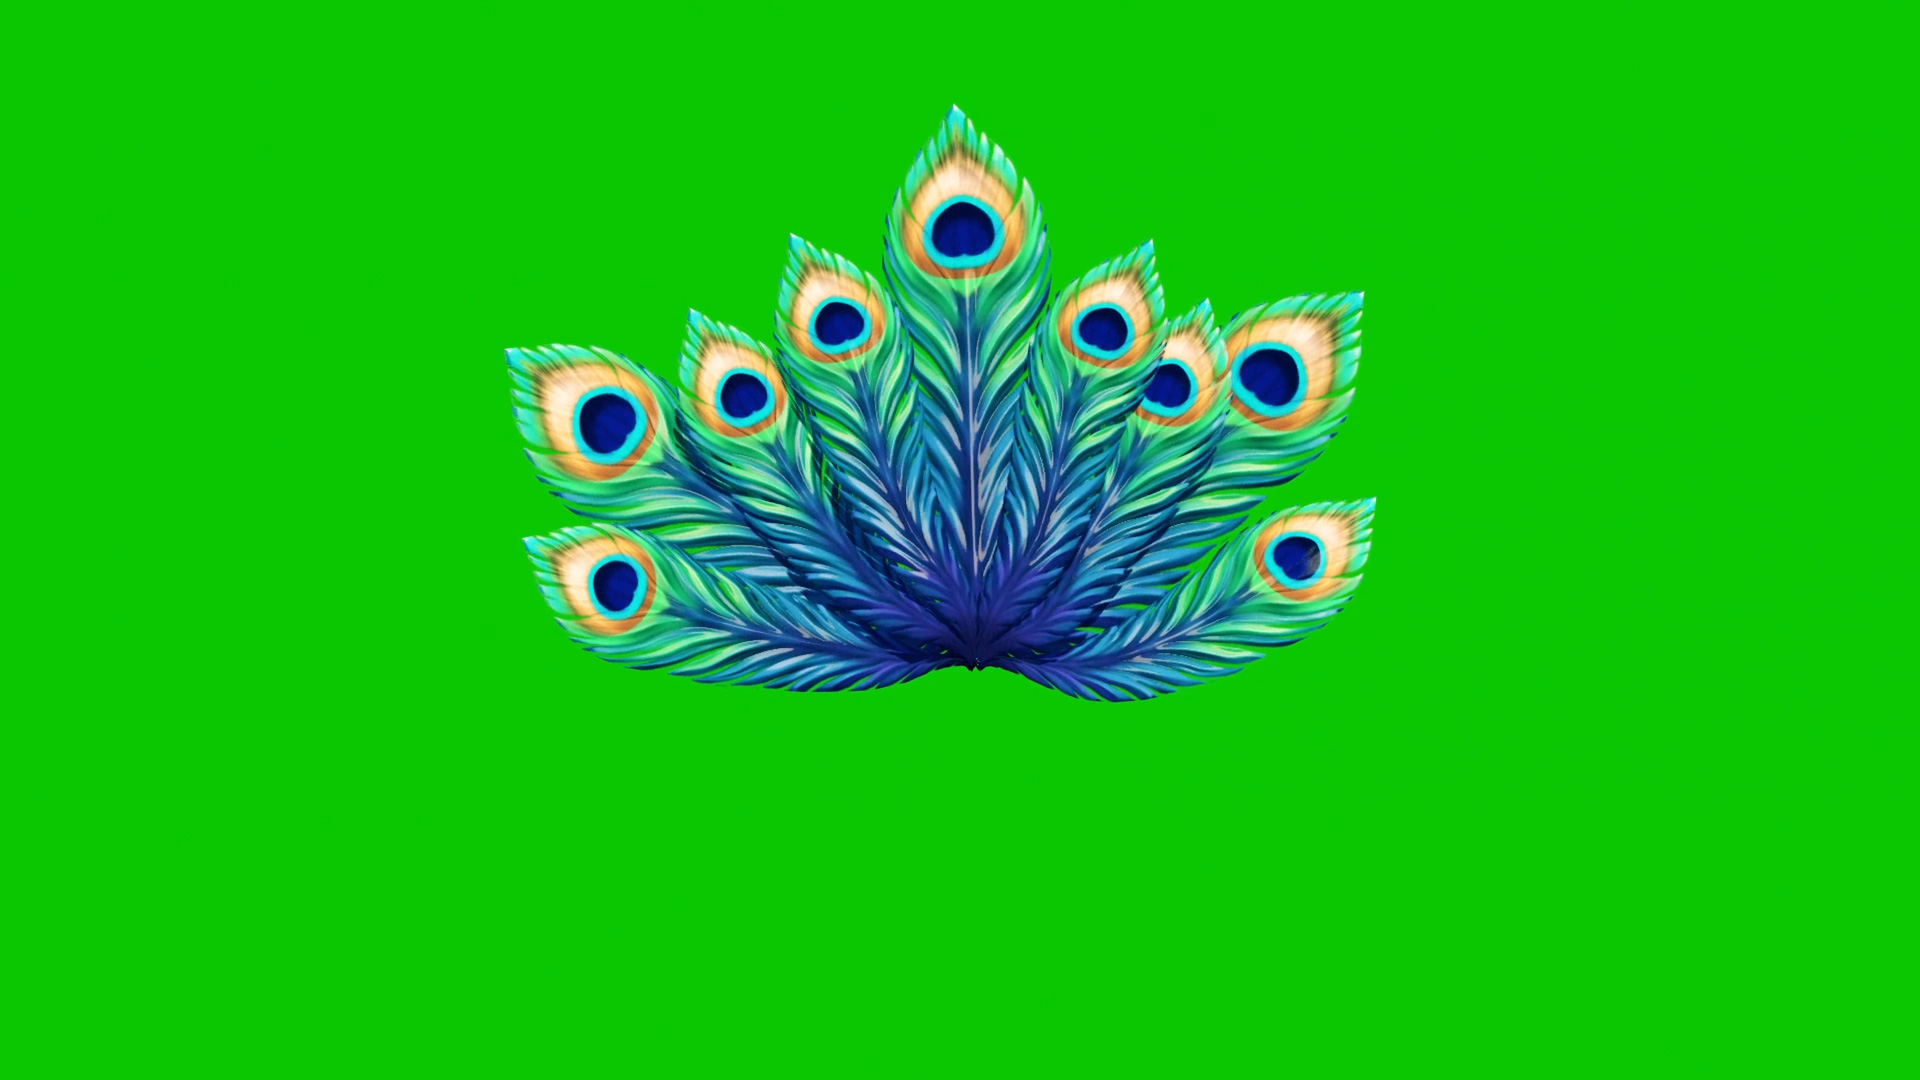 Peacock Feathers 3d Model Animated Pixelboom